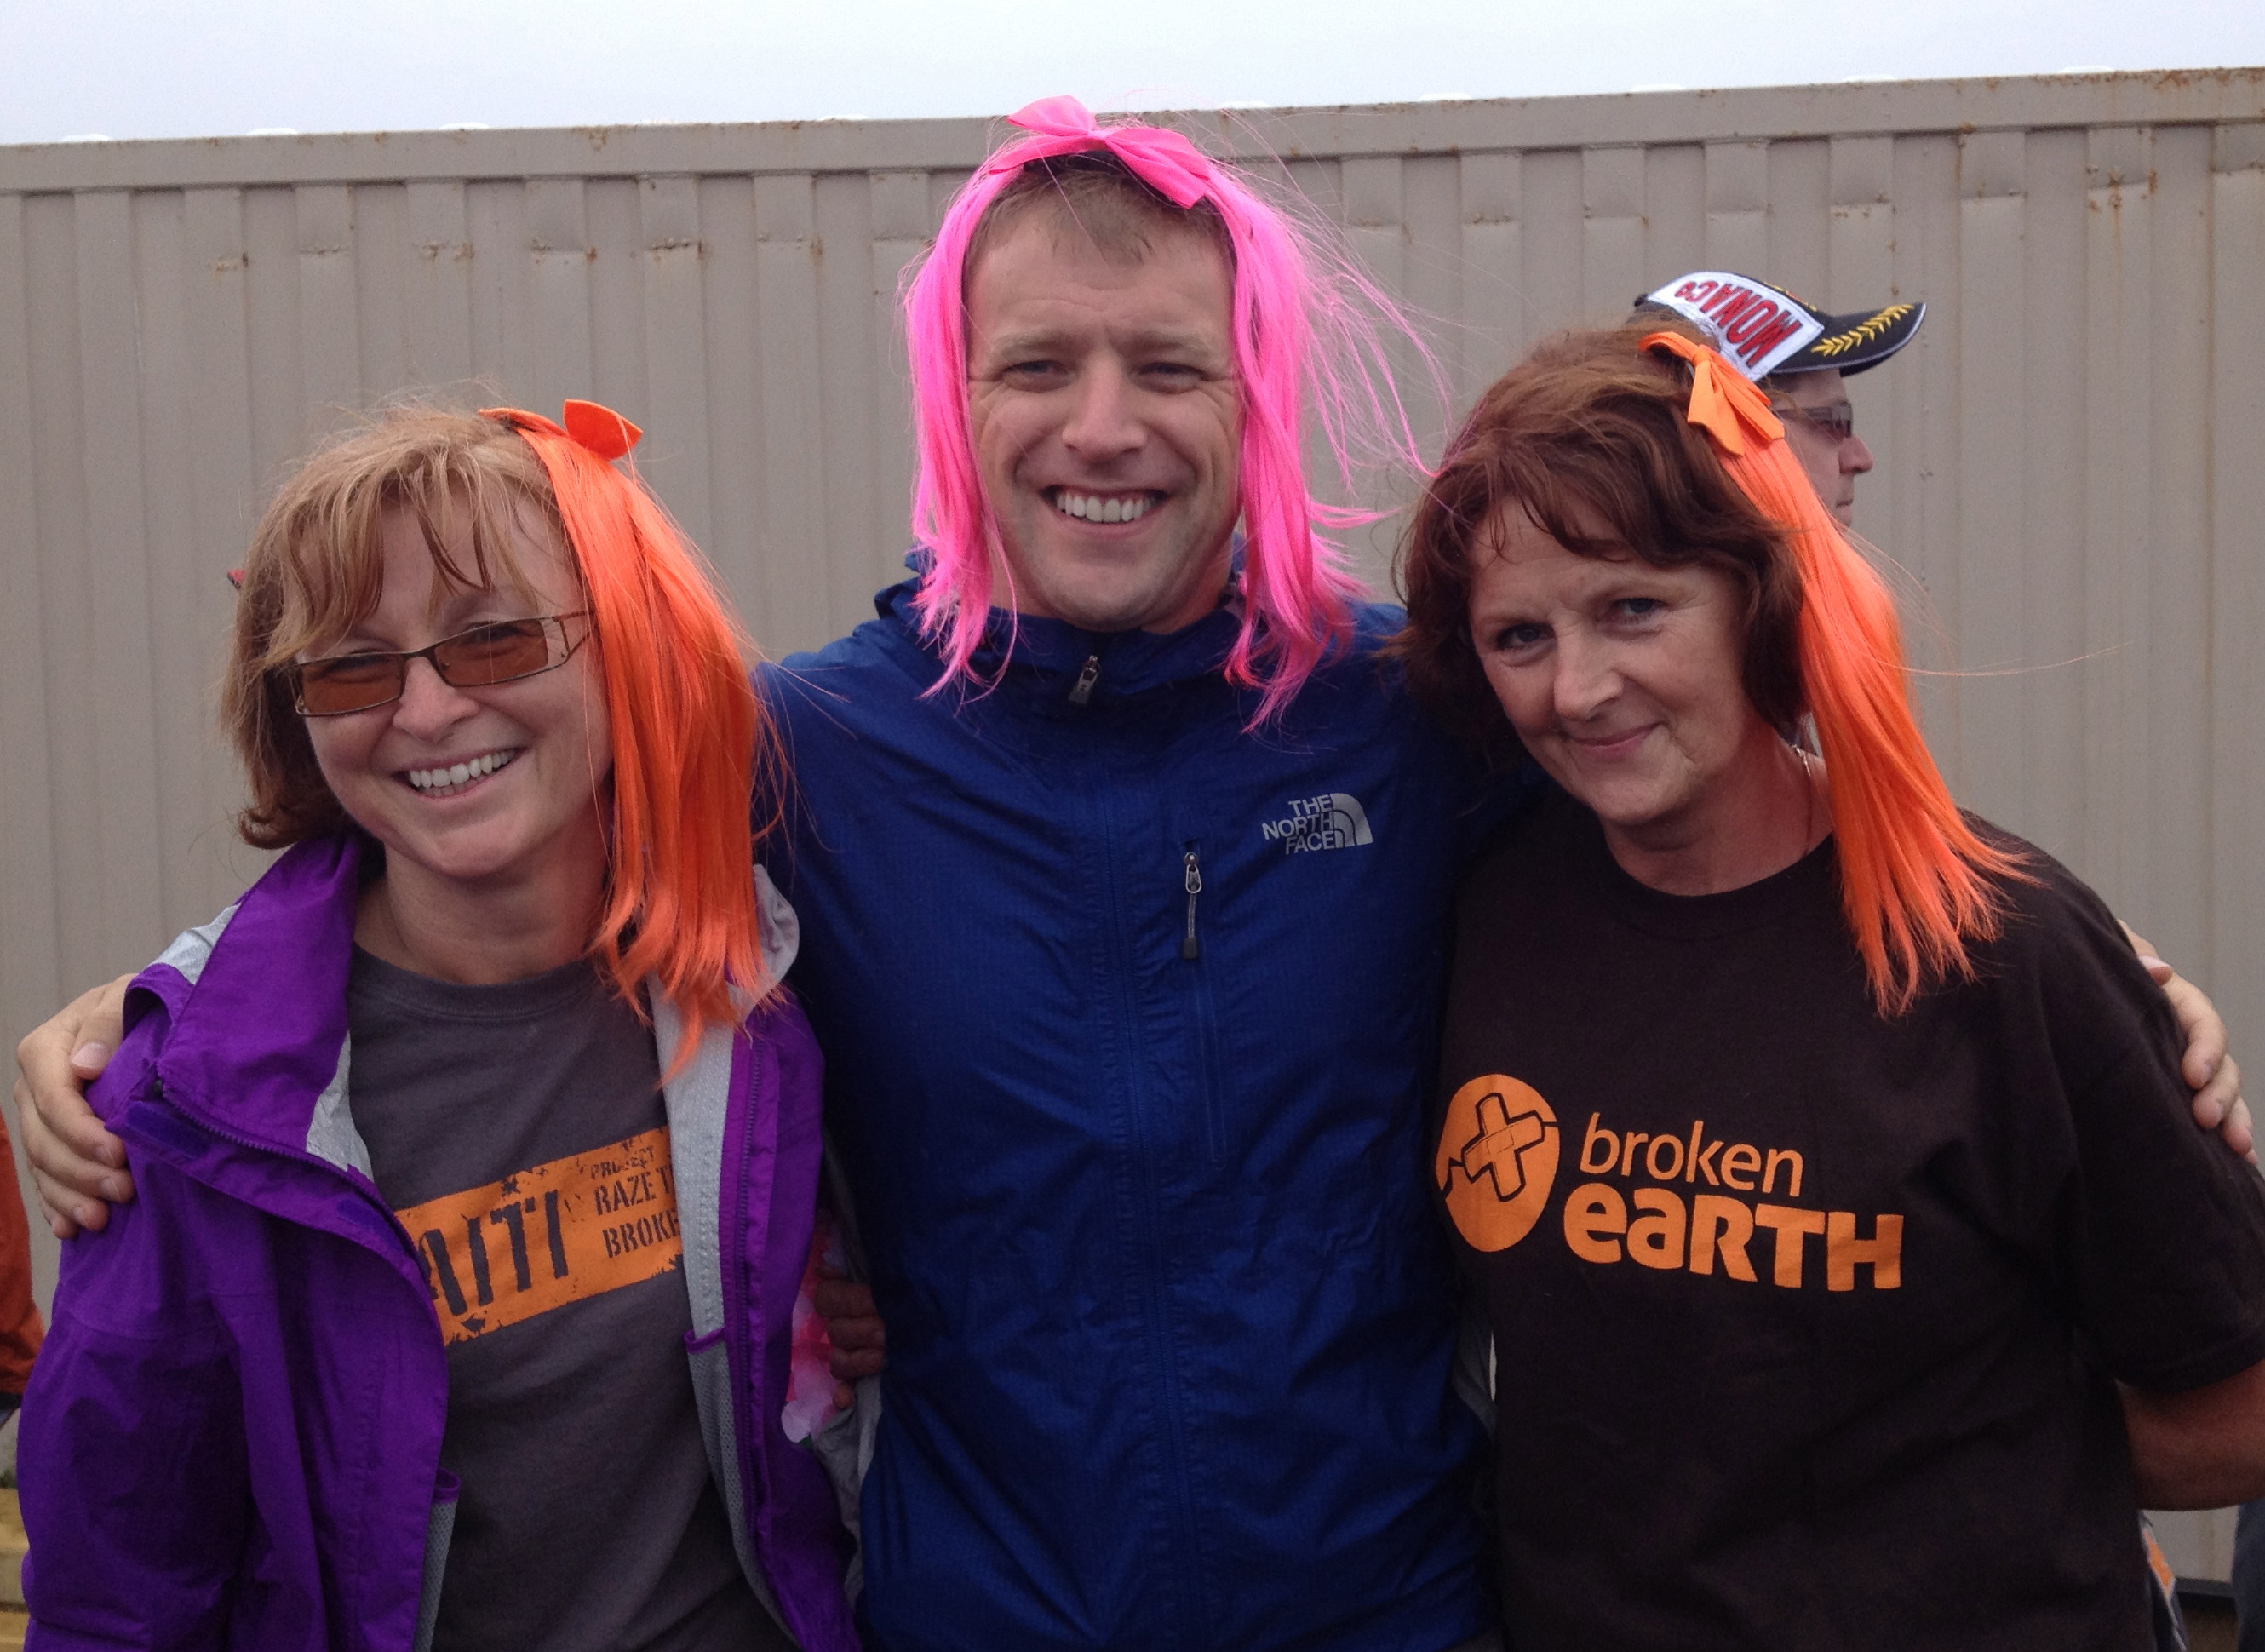 Andrew (centre) with fellow Team Broken Earth members at a rowing fundraiser for breast cancer research, St. John's, N.L.